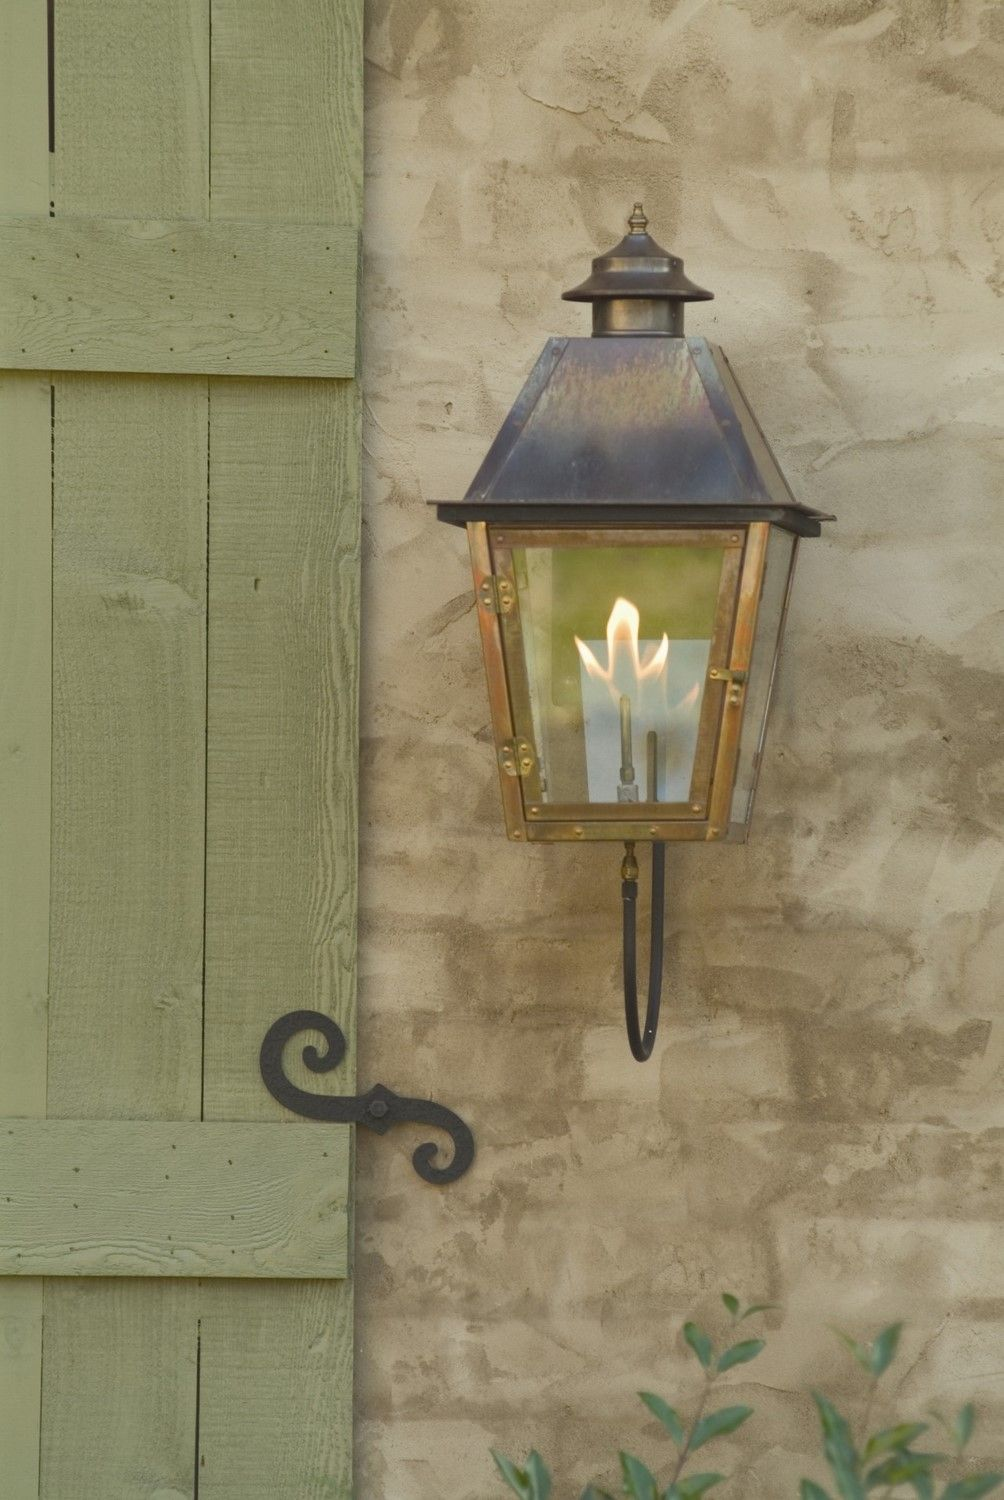 Wall Mounted Gas Lamps : Carolina Lanterns Gas Lamp Atlas Wall Mount Lighting Pinterest Wall mount, Walls and Gas ...